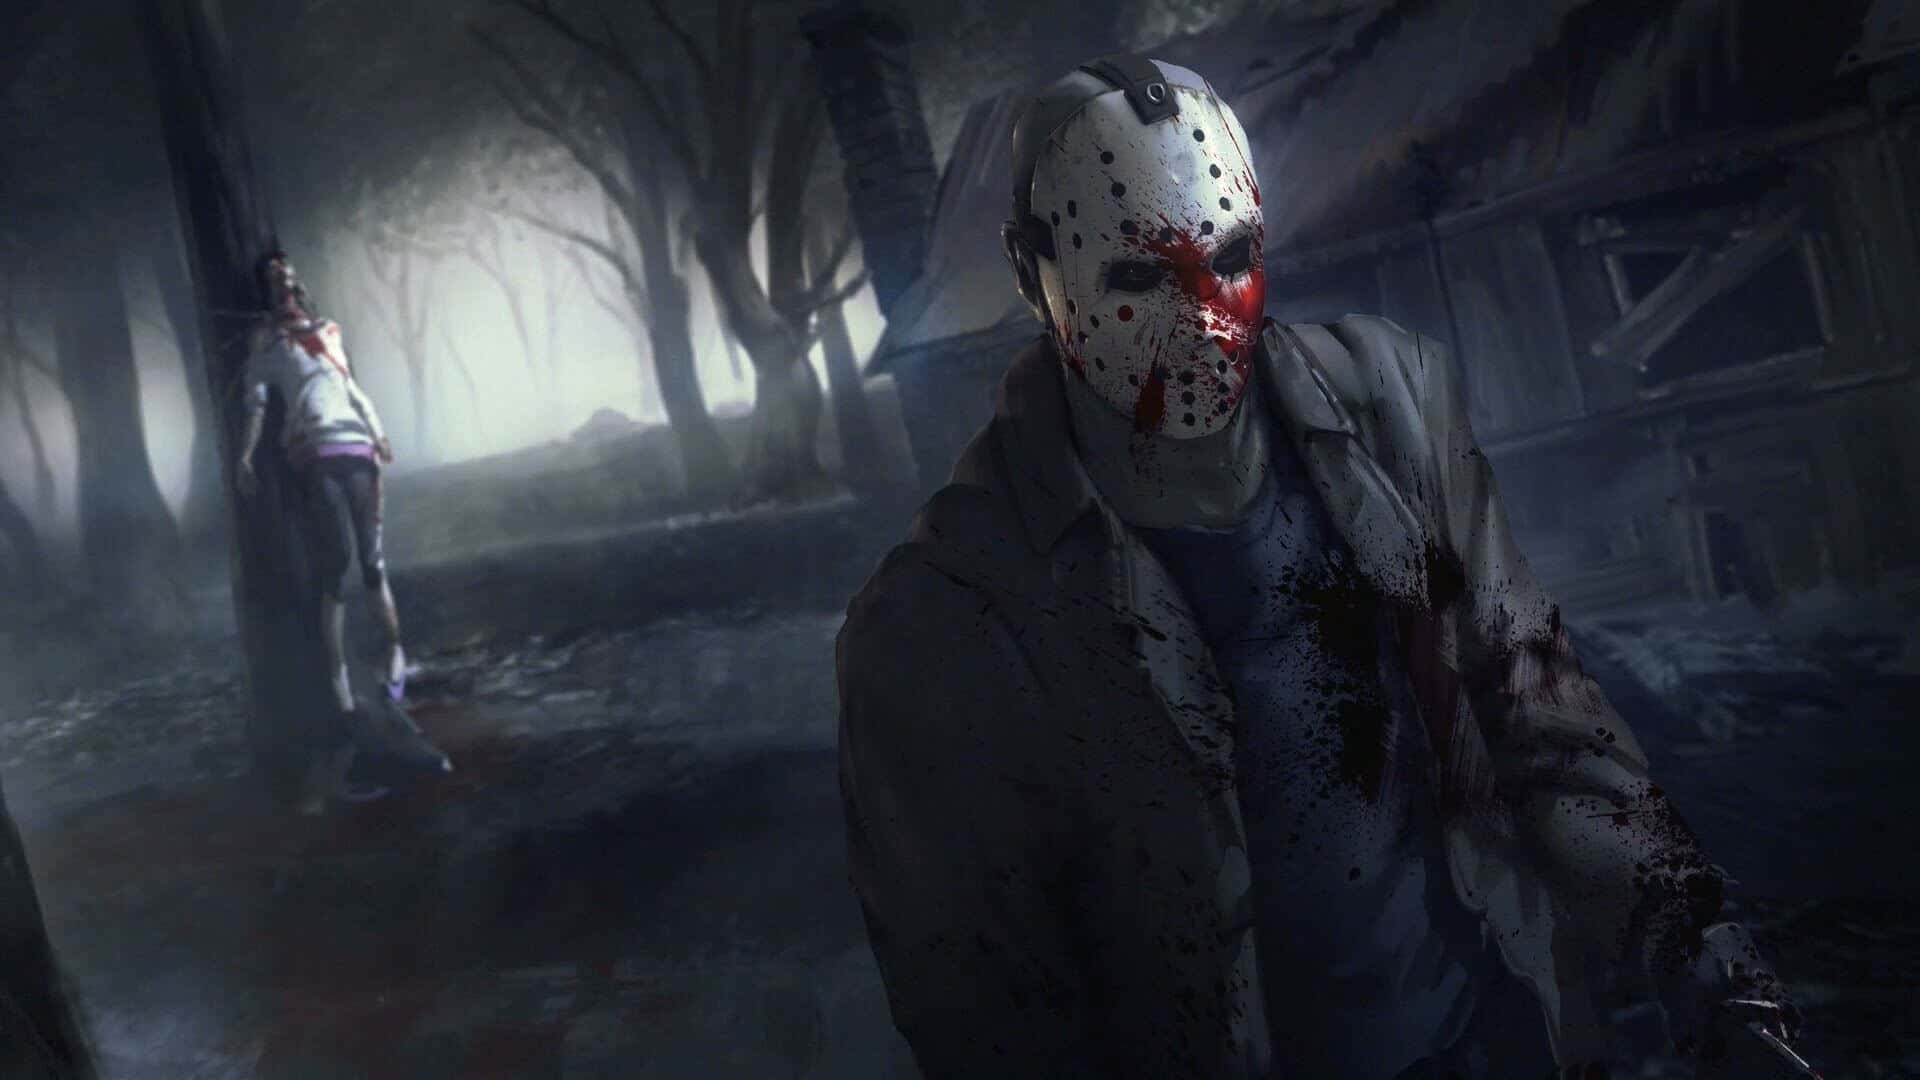 Friday the 13th The Game download free